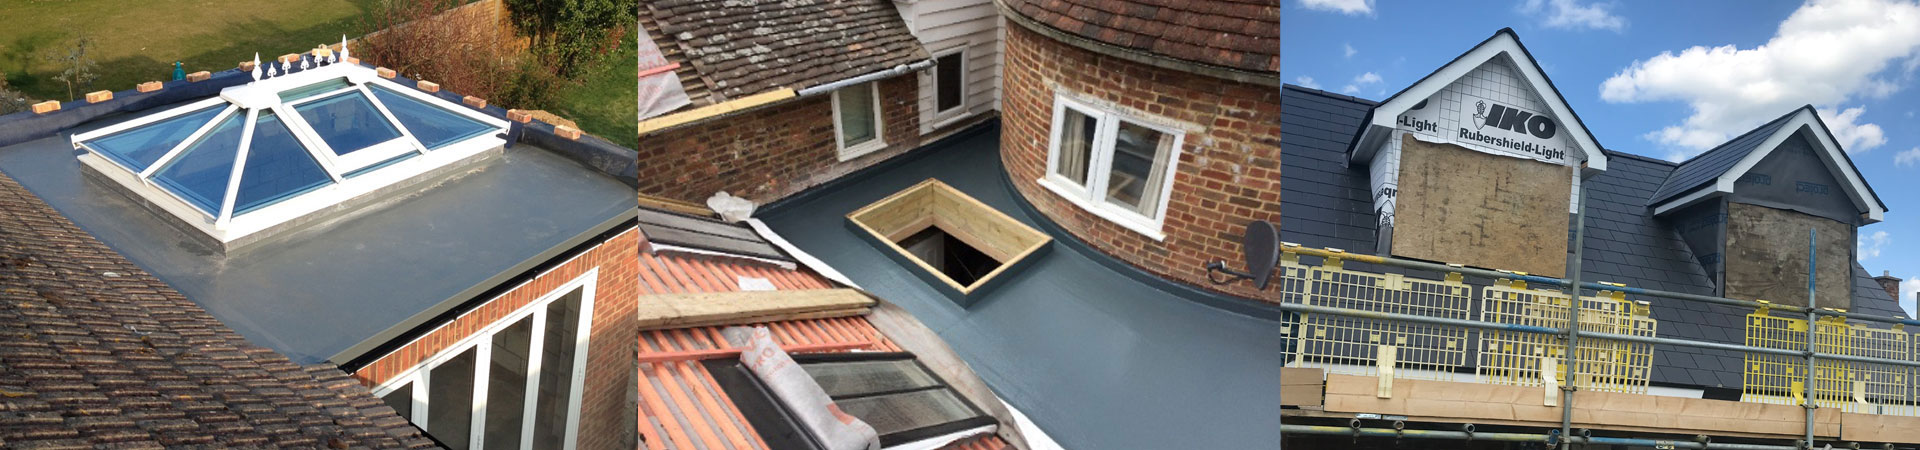 GRP Roofing installed by Wanstall Ltd